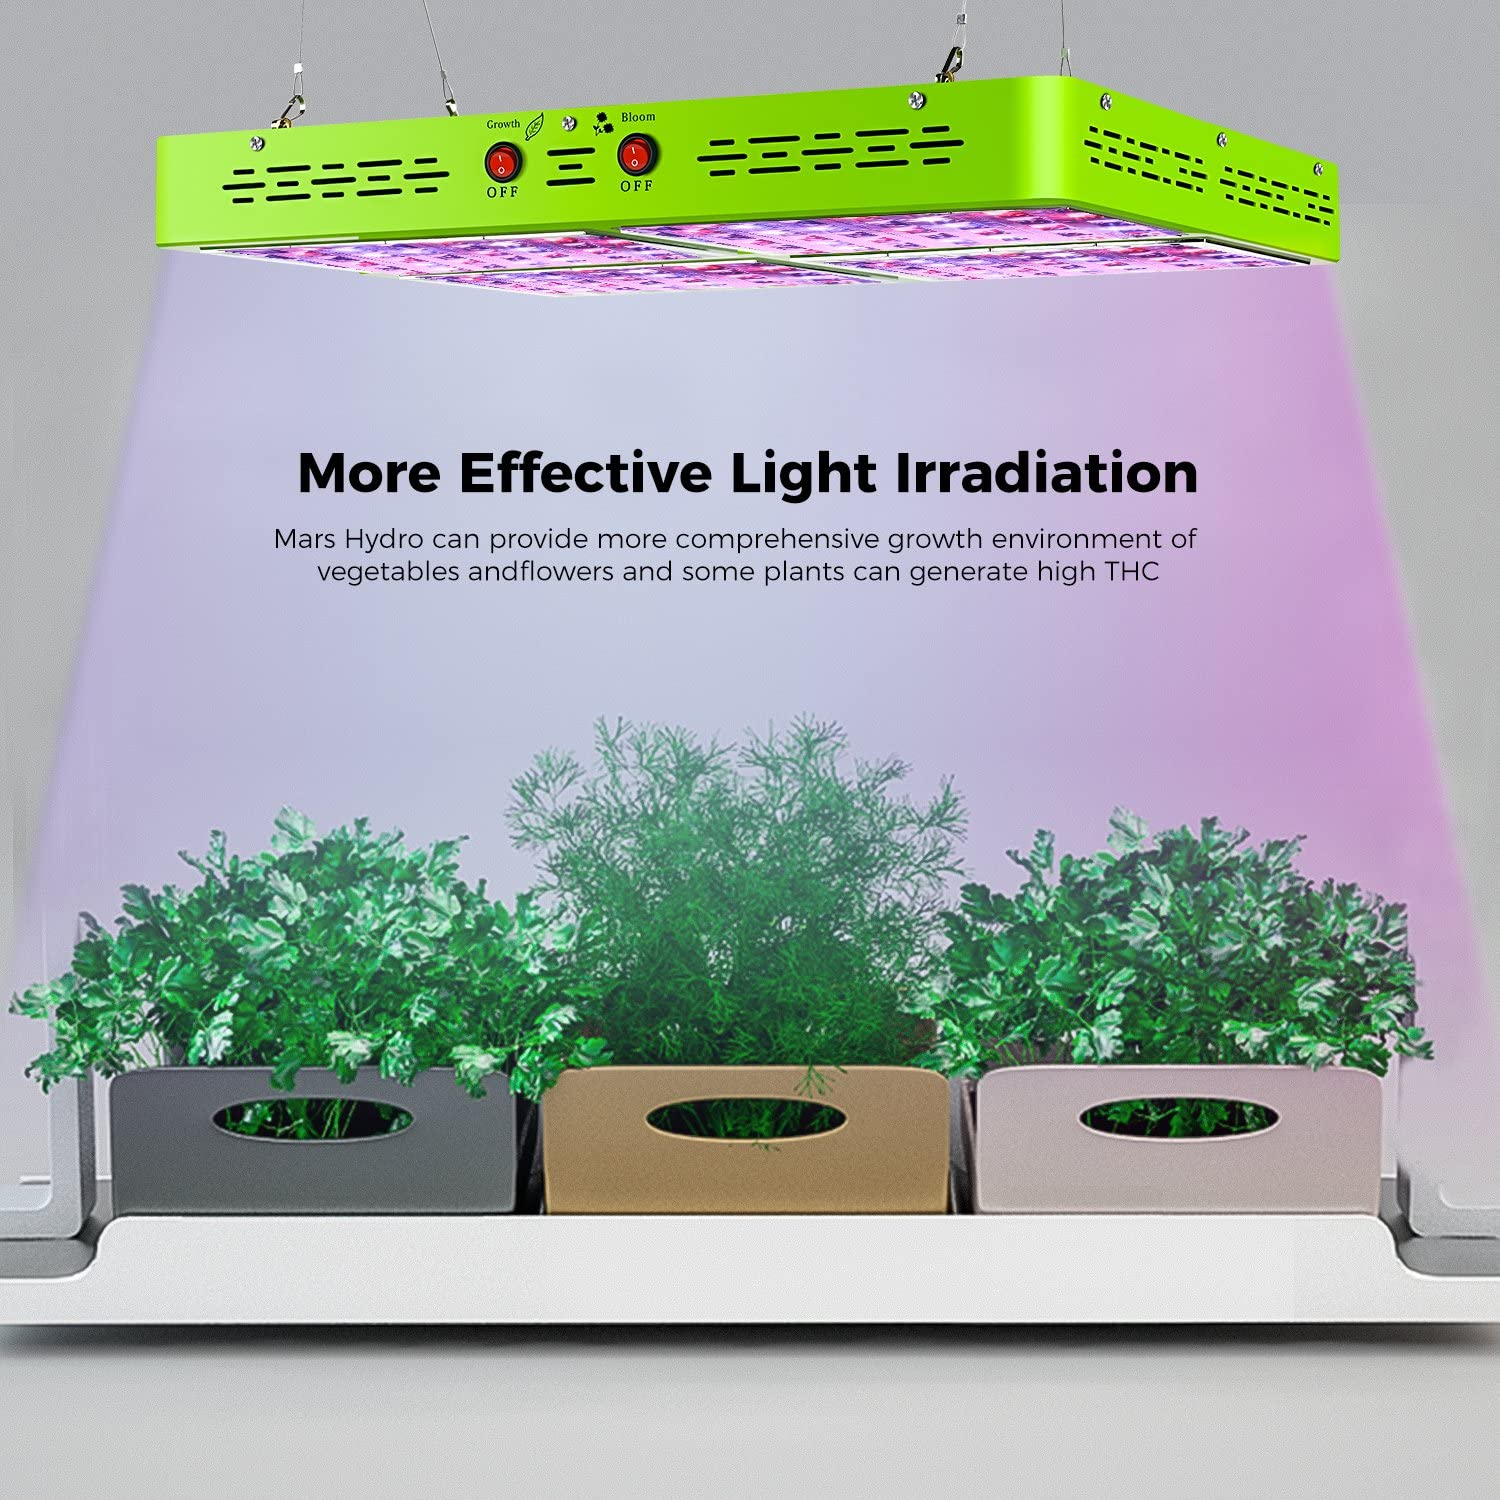 MARS HYDRO Safety Glasses MarsHydro LED Grow Lights Safety Glasses for Indoor Gardens Greenhouses Hydroponics Protective Goggles Against UV IR Rays Protective Eyewear